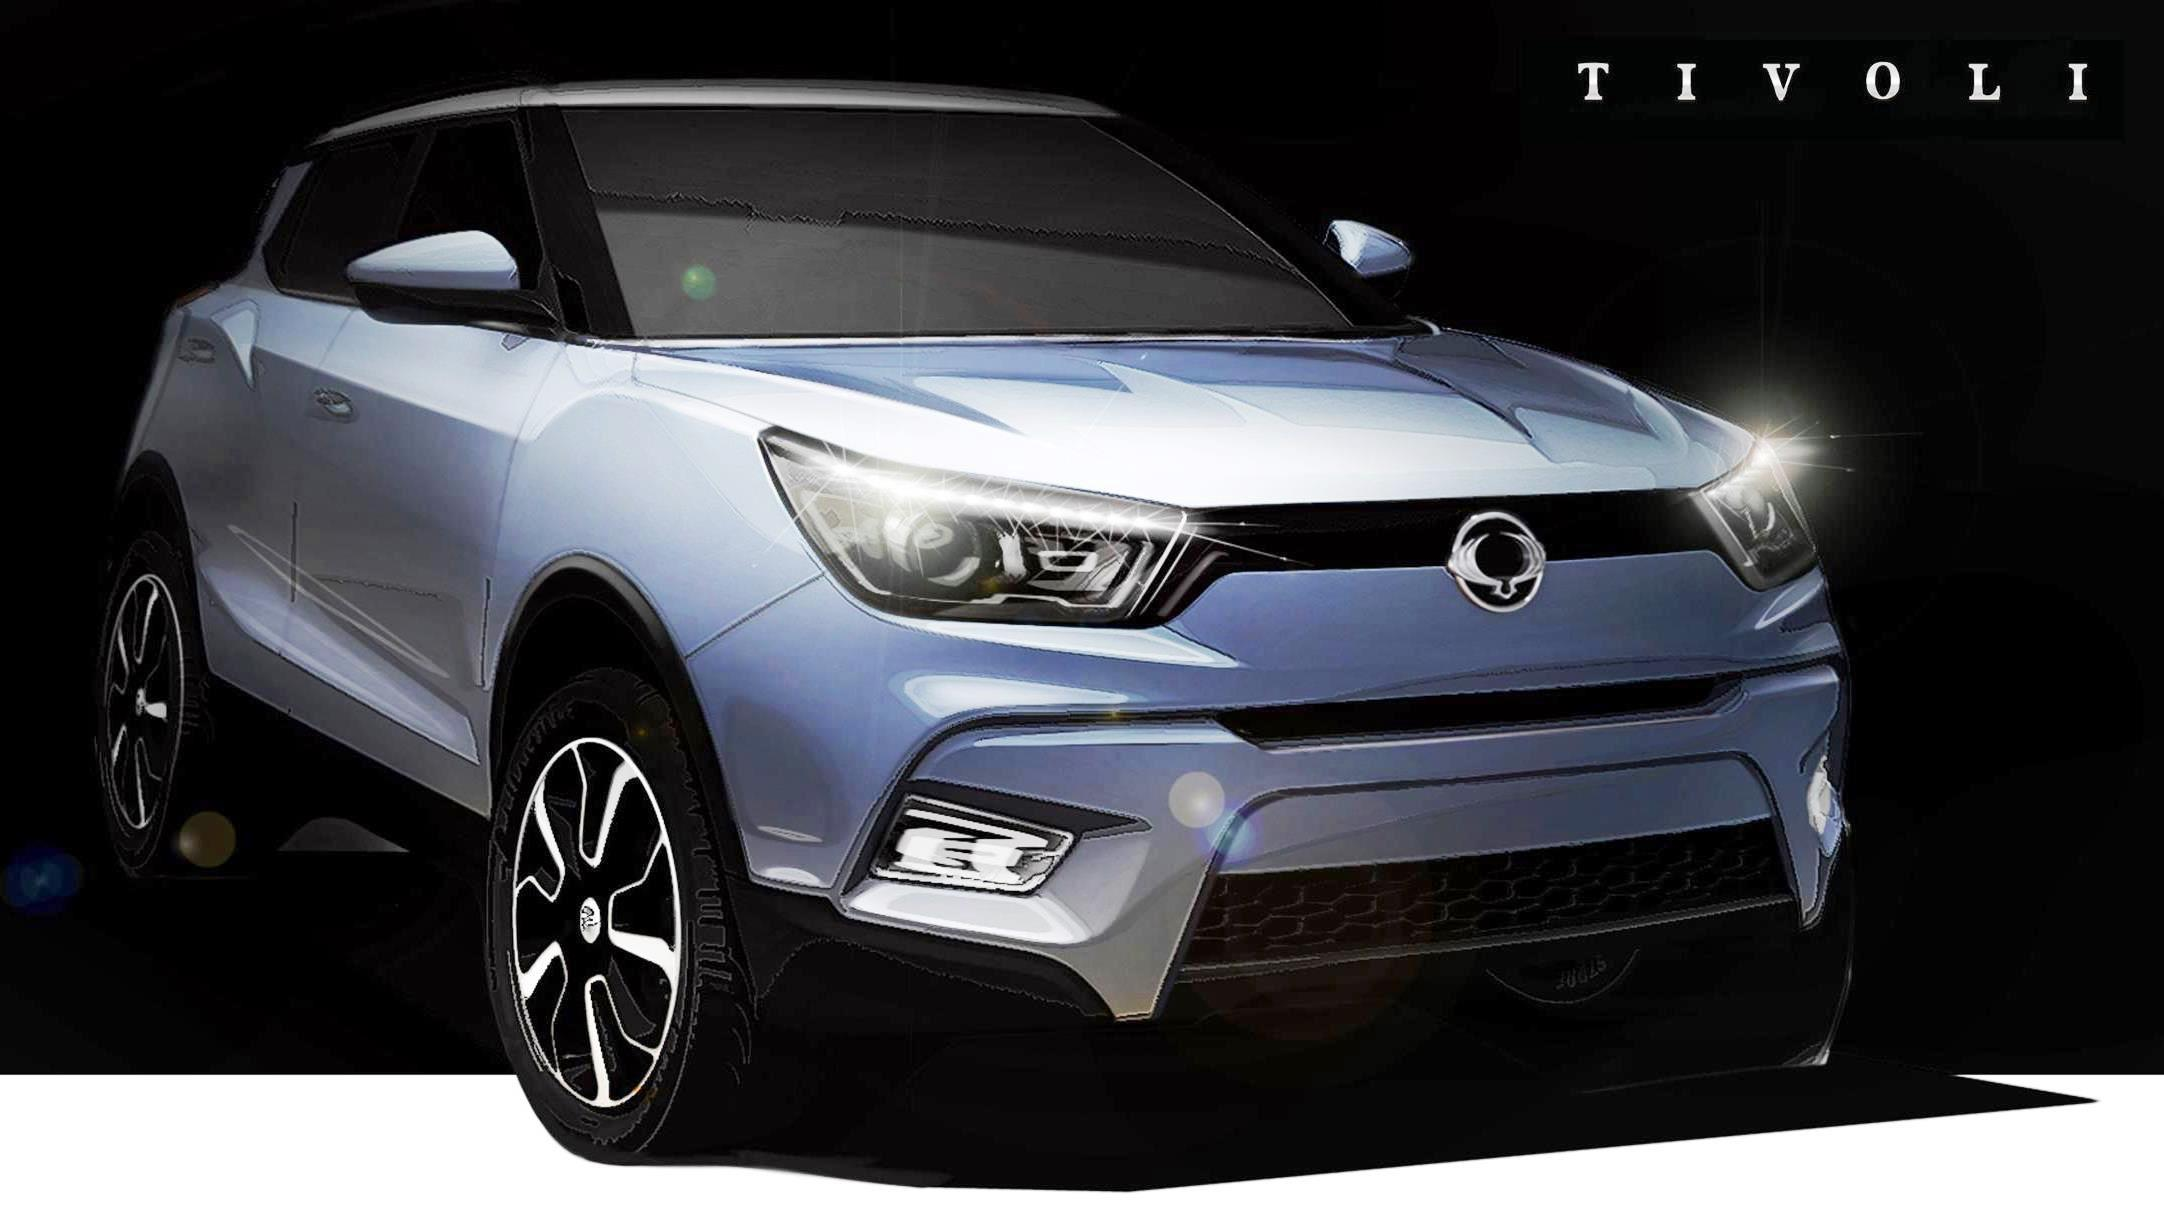 SsangYong Tivoli High